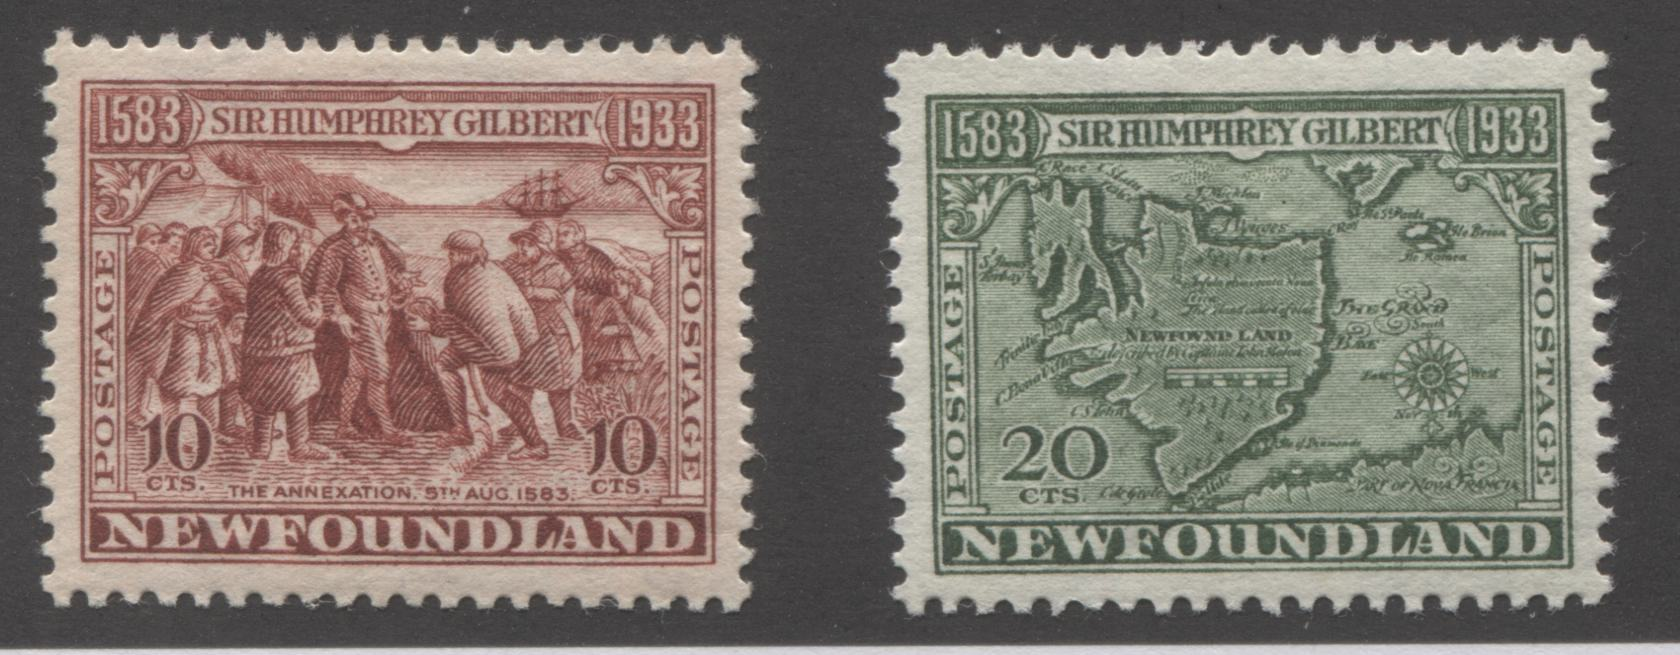 Newfoundland #220, 223 10c Red Brown and 20c Bronze Green The Annexation & Map of Newfoundland, 1933 Sir Humphrey Gilbert Issue, Very Fine Mint OG Examples of the Comb Perf. 13.4 x 13.5 Brixton Chrome